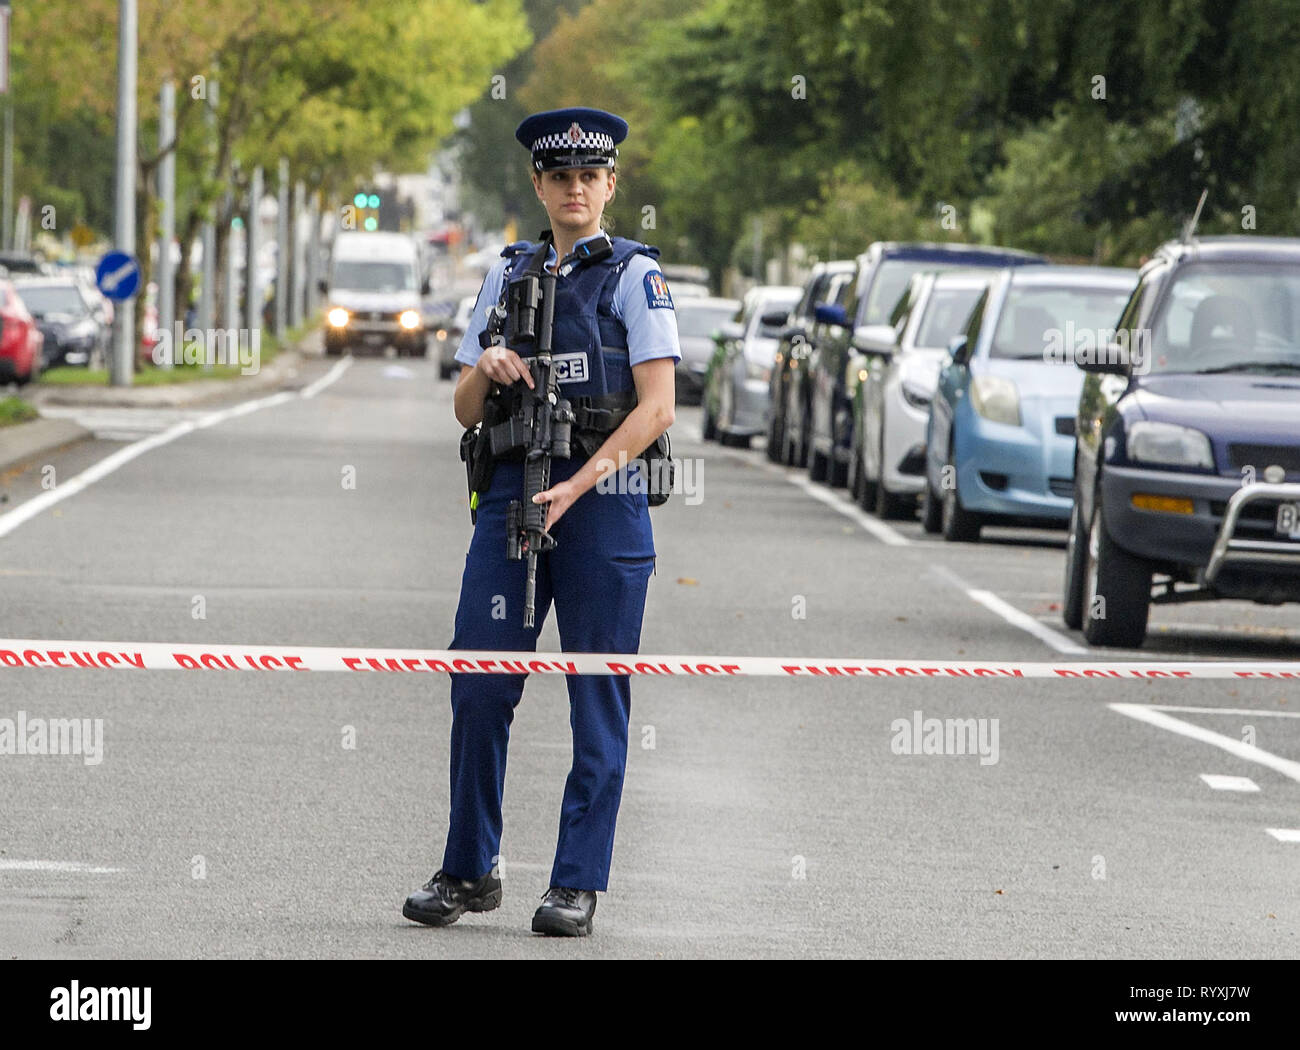 Christchurch, Canterbury, New Zealand. 15th Mar, 2019. Armed police seal off street to Masjid Al Noor mosque, one of two mosques where gunmen attacked and killed 49 people and another 48 were injured. Four people have been arrested and several bombs were found following the shootings. New Zealand Police have charged a man in his late twenties with murder. NZ authorities have named one of the suspects as Brenton Tarrant. Credit: PJ Heller/ZUMA Wire/Alamy Live News - Stock Image